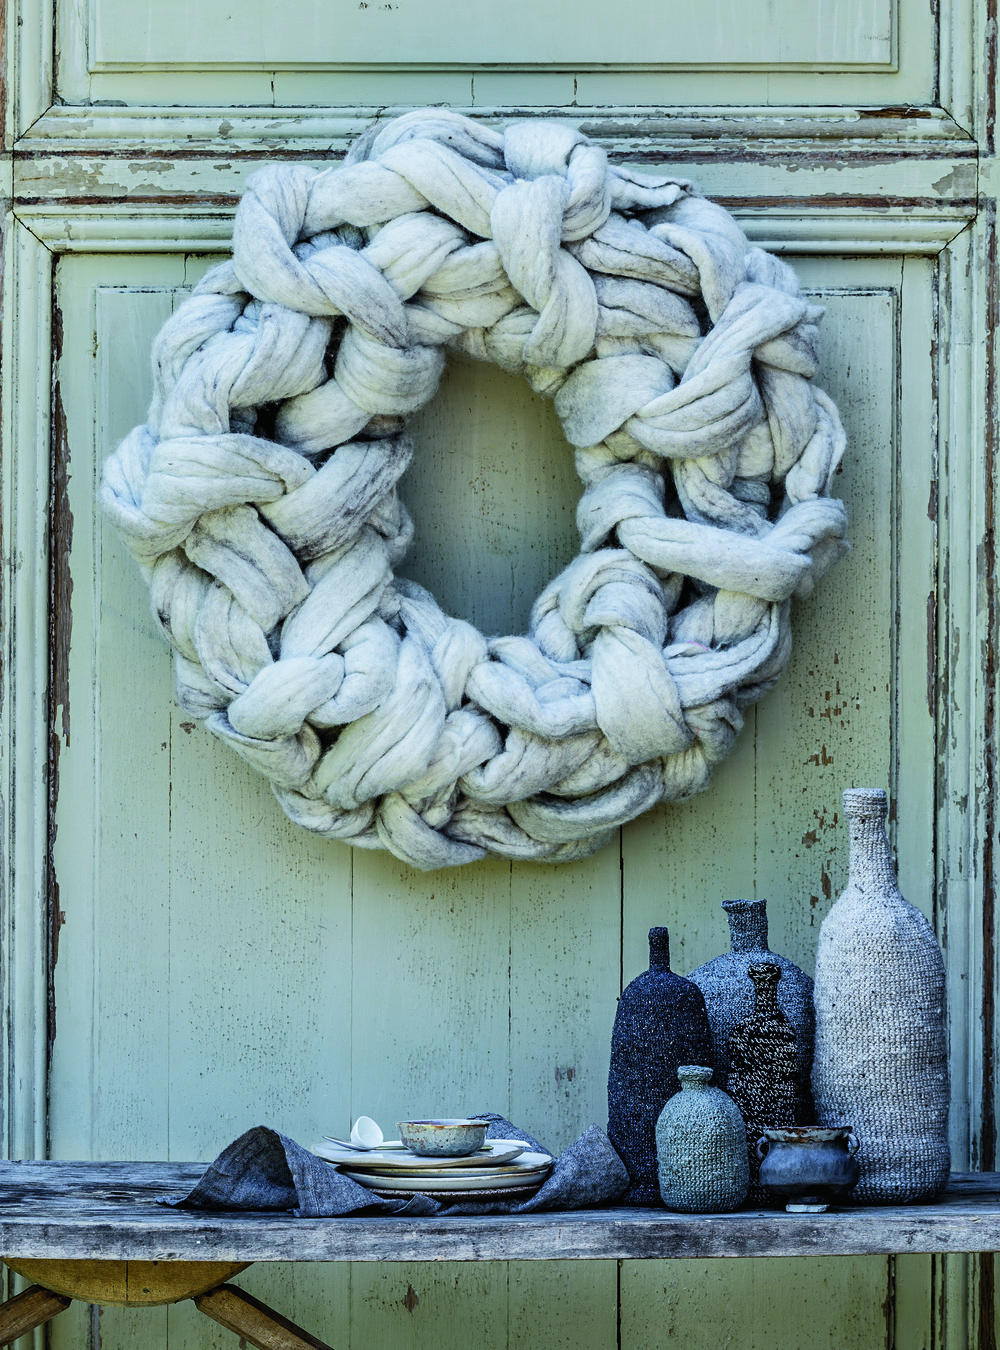 Image by Felix Forest. Styling by Claire Delmar. Little Dandelion Christmas Wreath for Country Style Magazine. The Wreath was won by Sarah in the USA. If your reading this Sarah, please send me a pic of the wreath on your door. I'd love to see it.